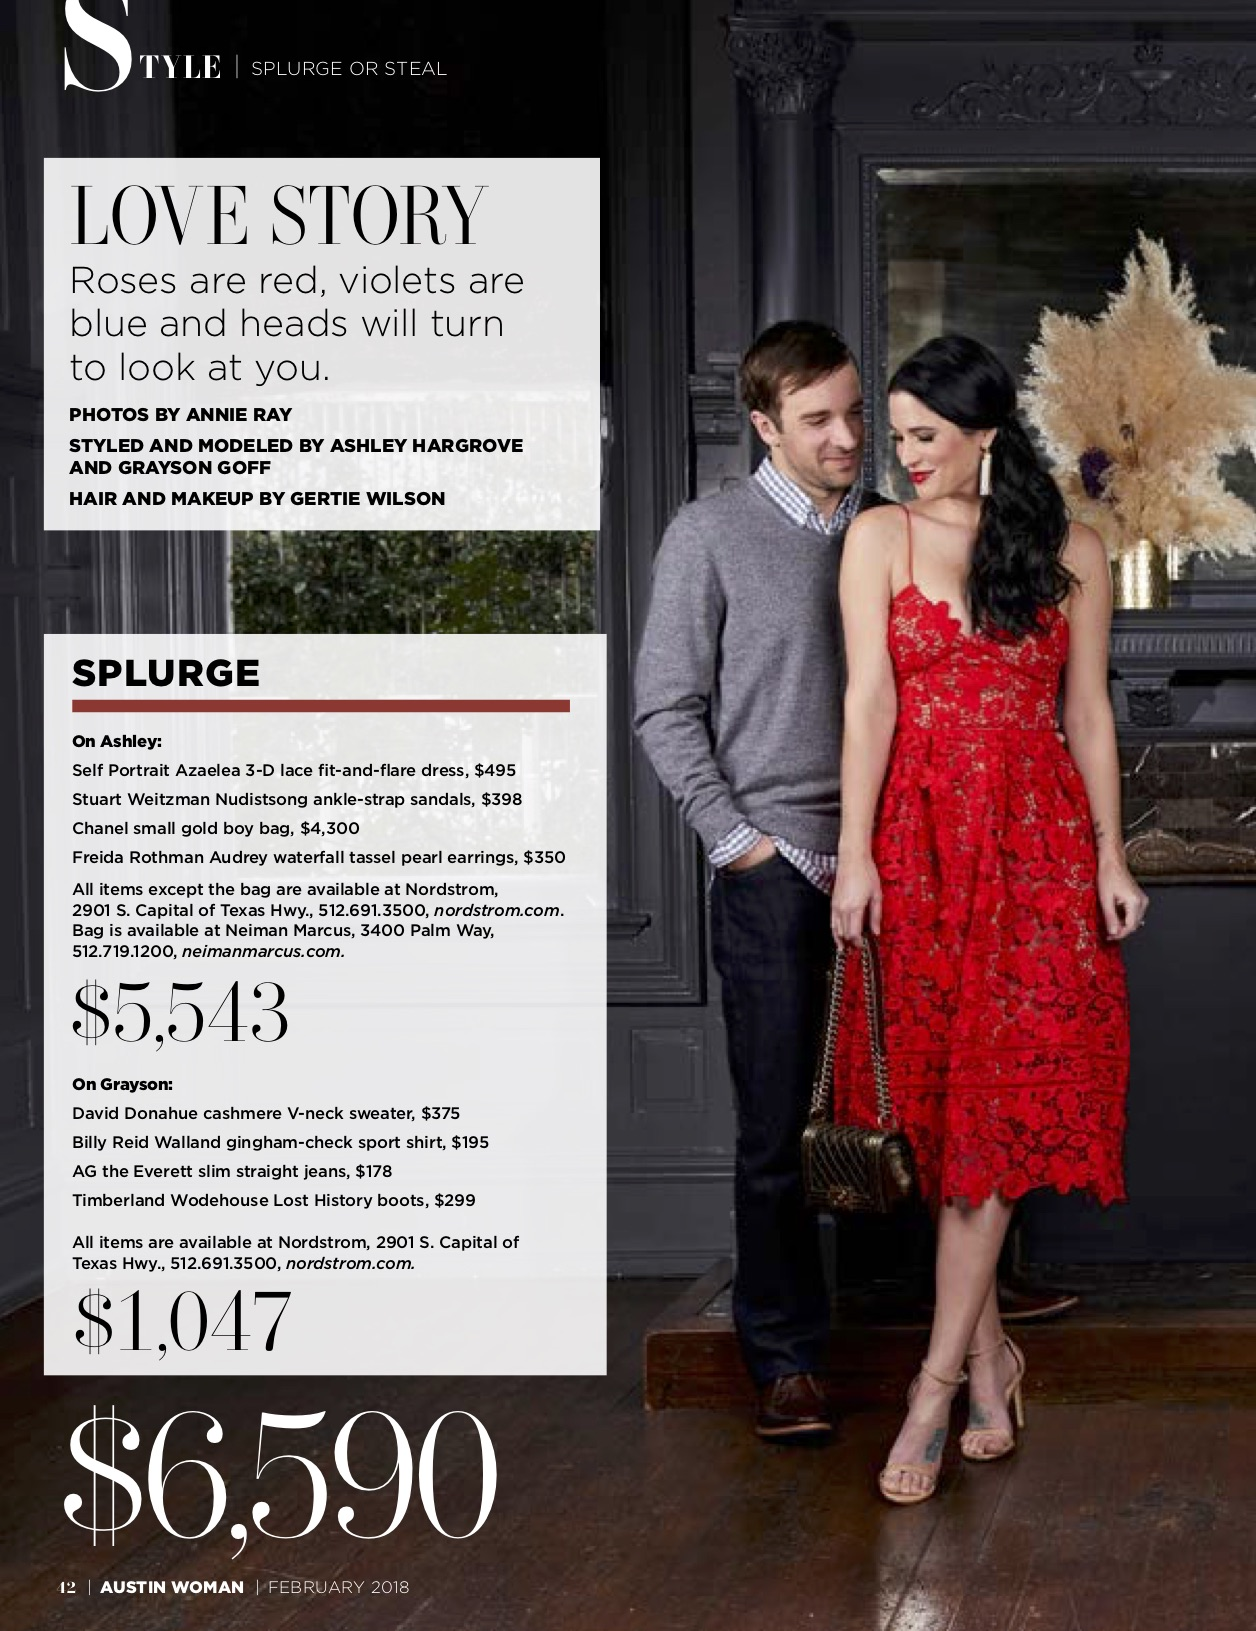 DTKAustin shares her recent Splurge or Steal Column about Date Night Ideas for him and her in Austin Woman Magazine just in time for Valentine's Day! || Dressed to Kill #valentineoutfits #datenightoutfit #reddress | Valentine's Date Night Outfits for Him & Her by top US fashion blog Dressed to Kill